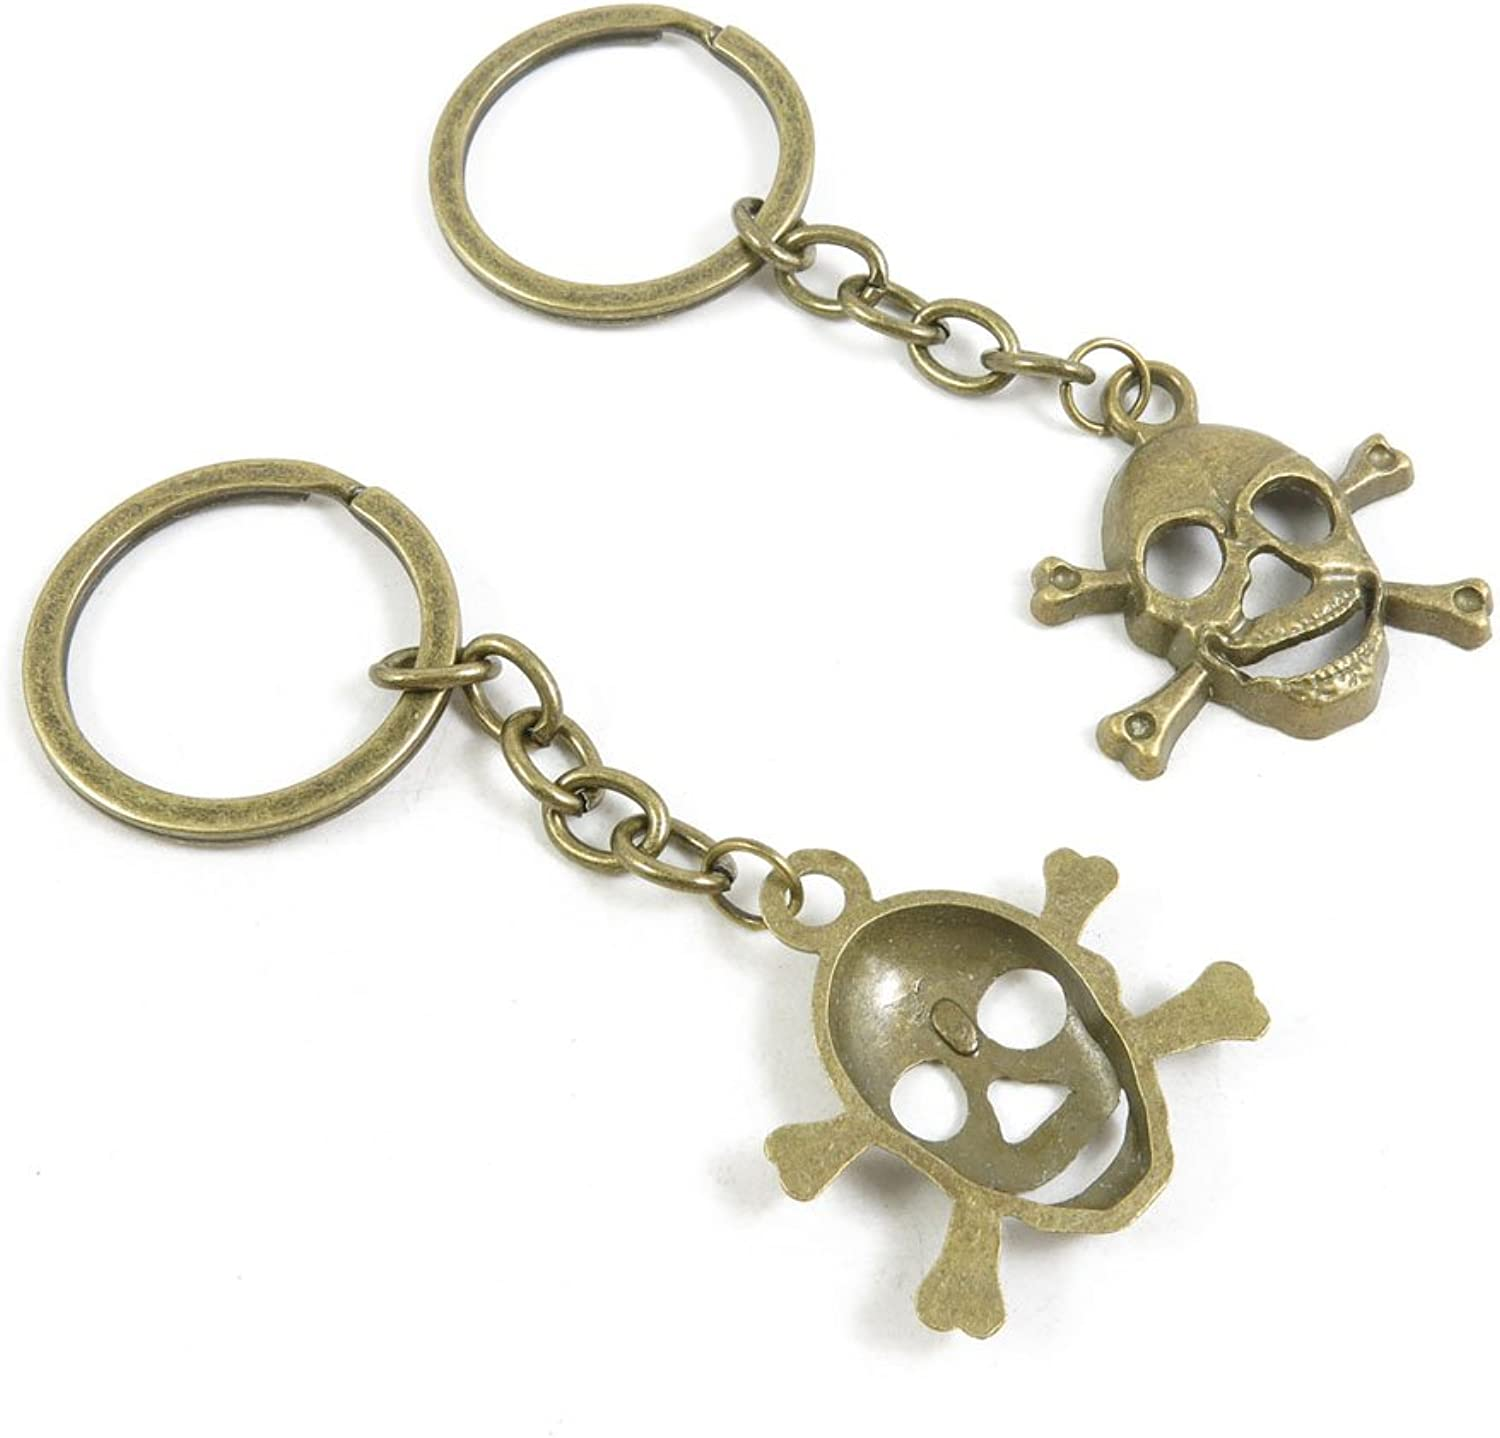 170 Pieces Fashion Jewelry Keyring Keychain Door Car Key Tag Ring Chain Supplier Supply Wholesale Bulk Lots P5CI7 Skull